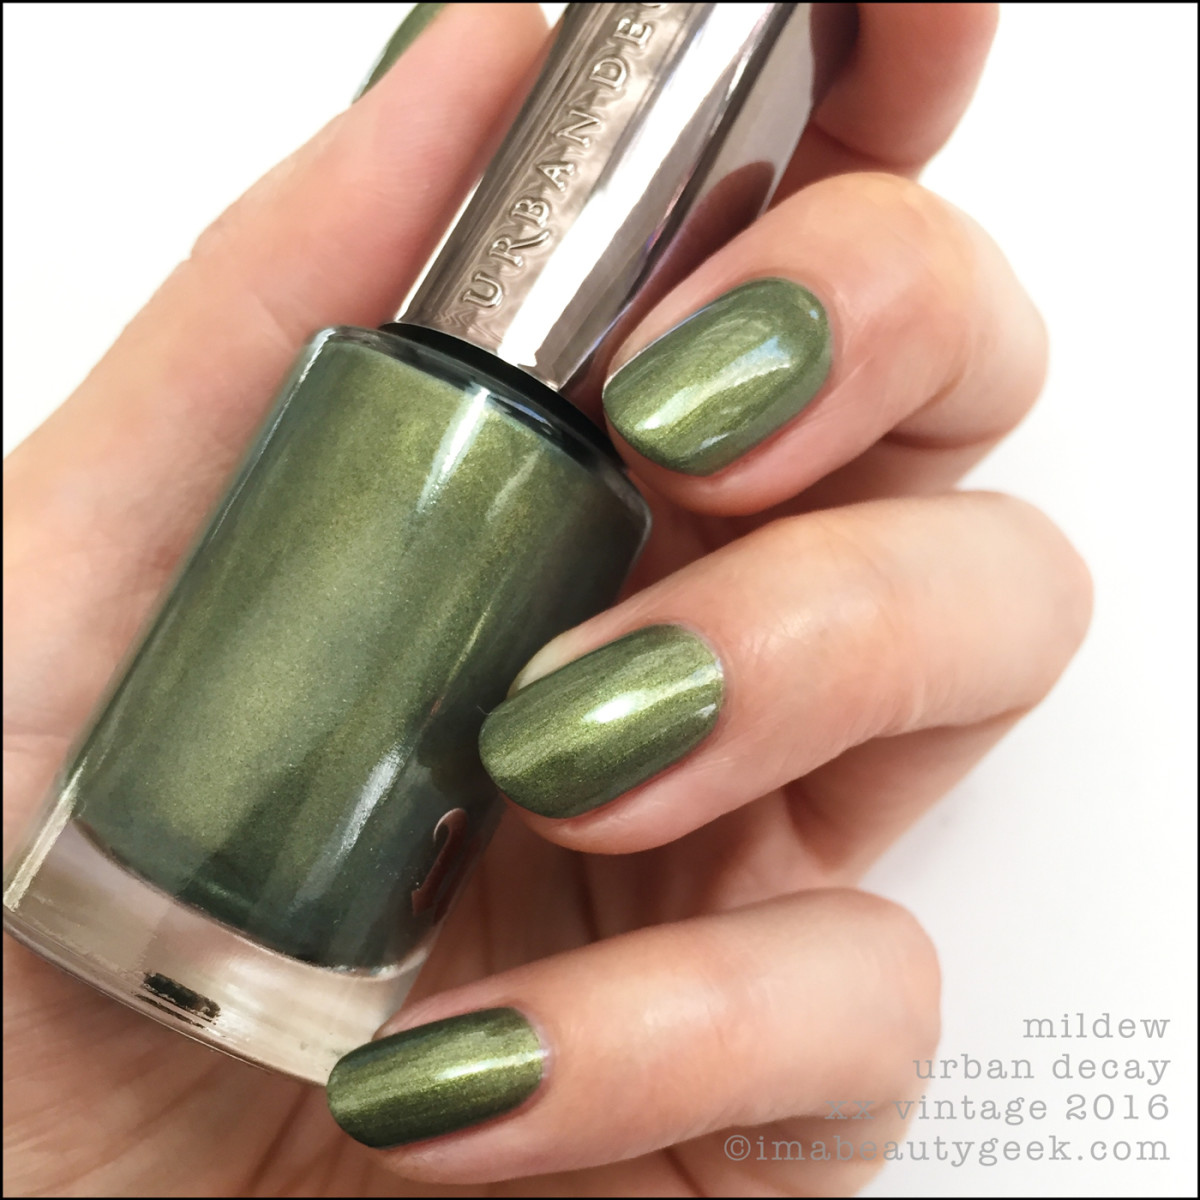 Urban Decay Mildew XX Vintage_Urban Decay Vice Vintage Nail Polish Swatches Review